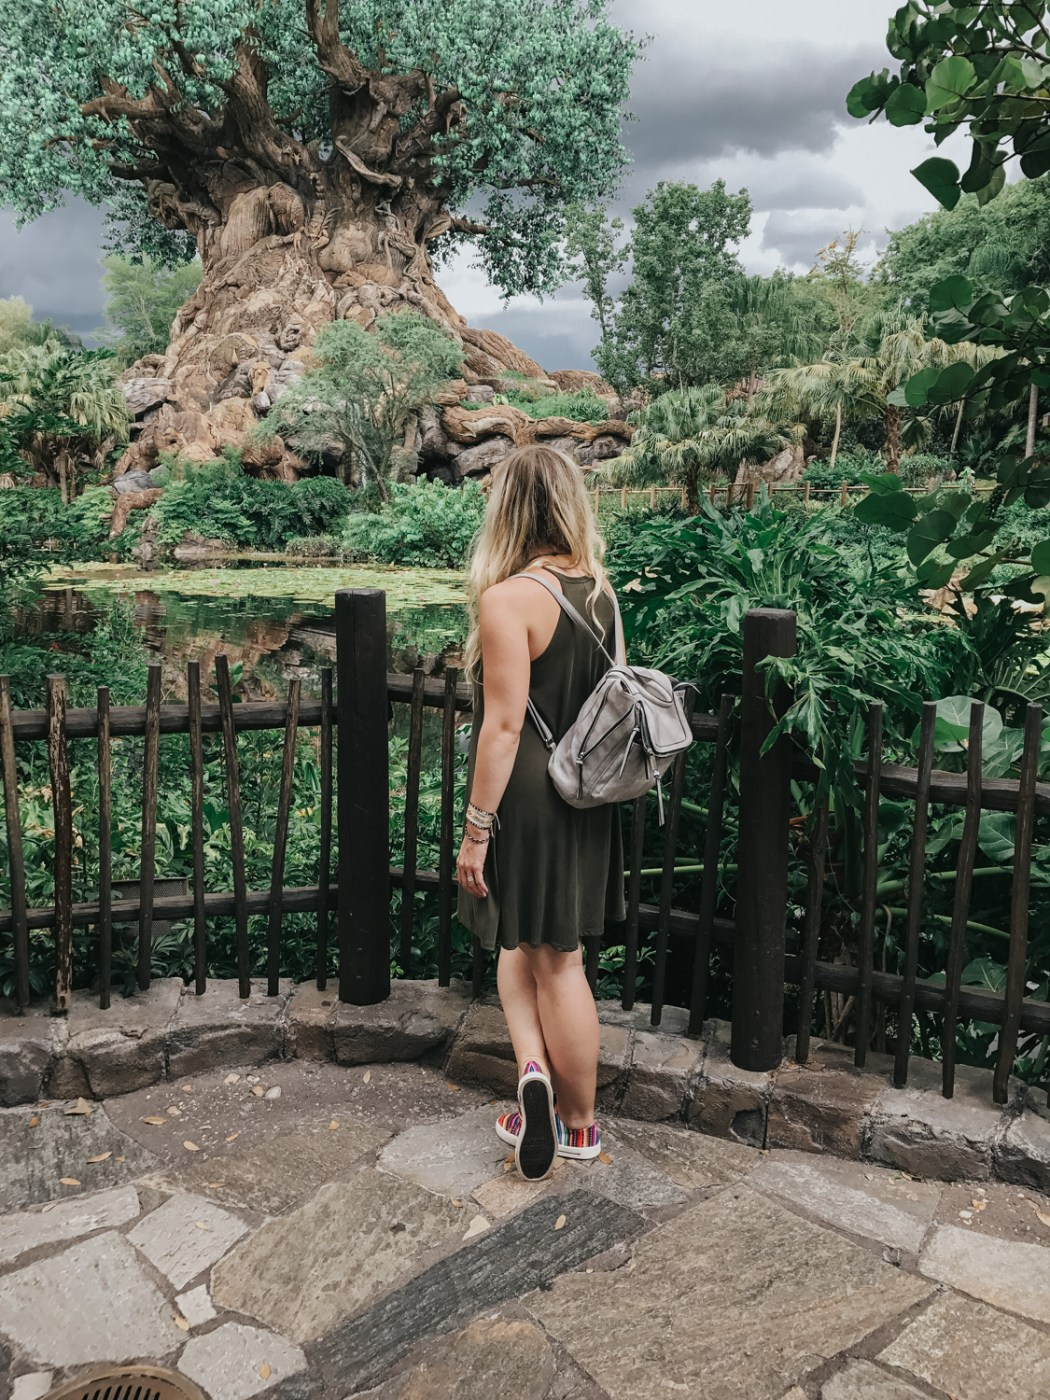 At Animal Kingdom's Tree of Life wearing an olive shift dress, ISKAY colorful handmade shoes, @kutukakiss bracelets, and @violetrayny backpack.